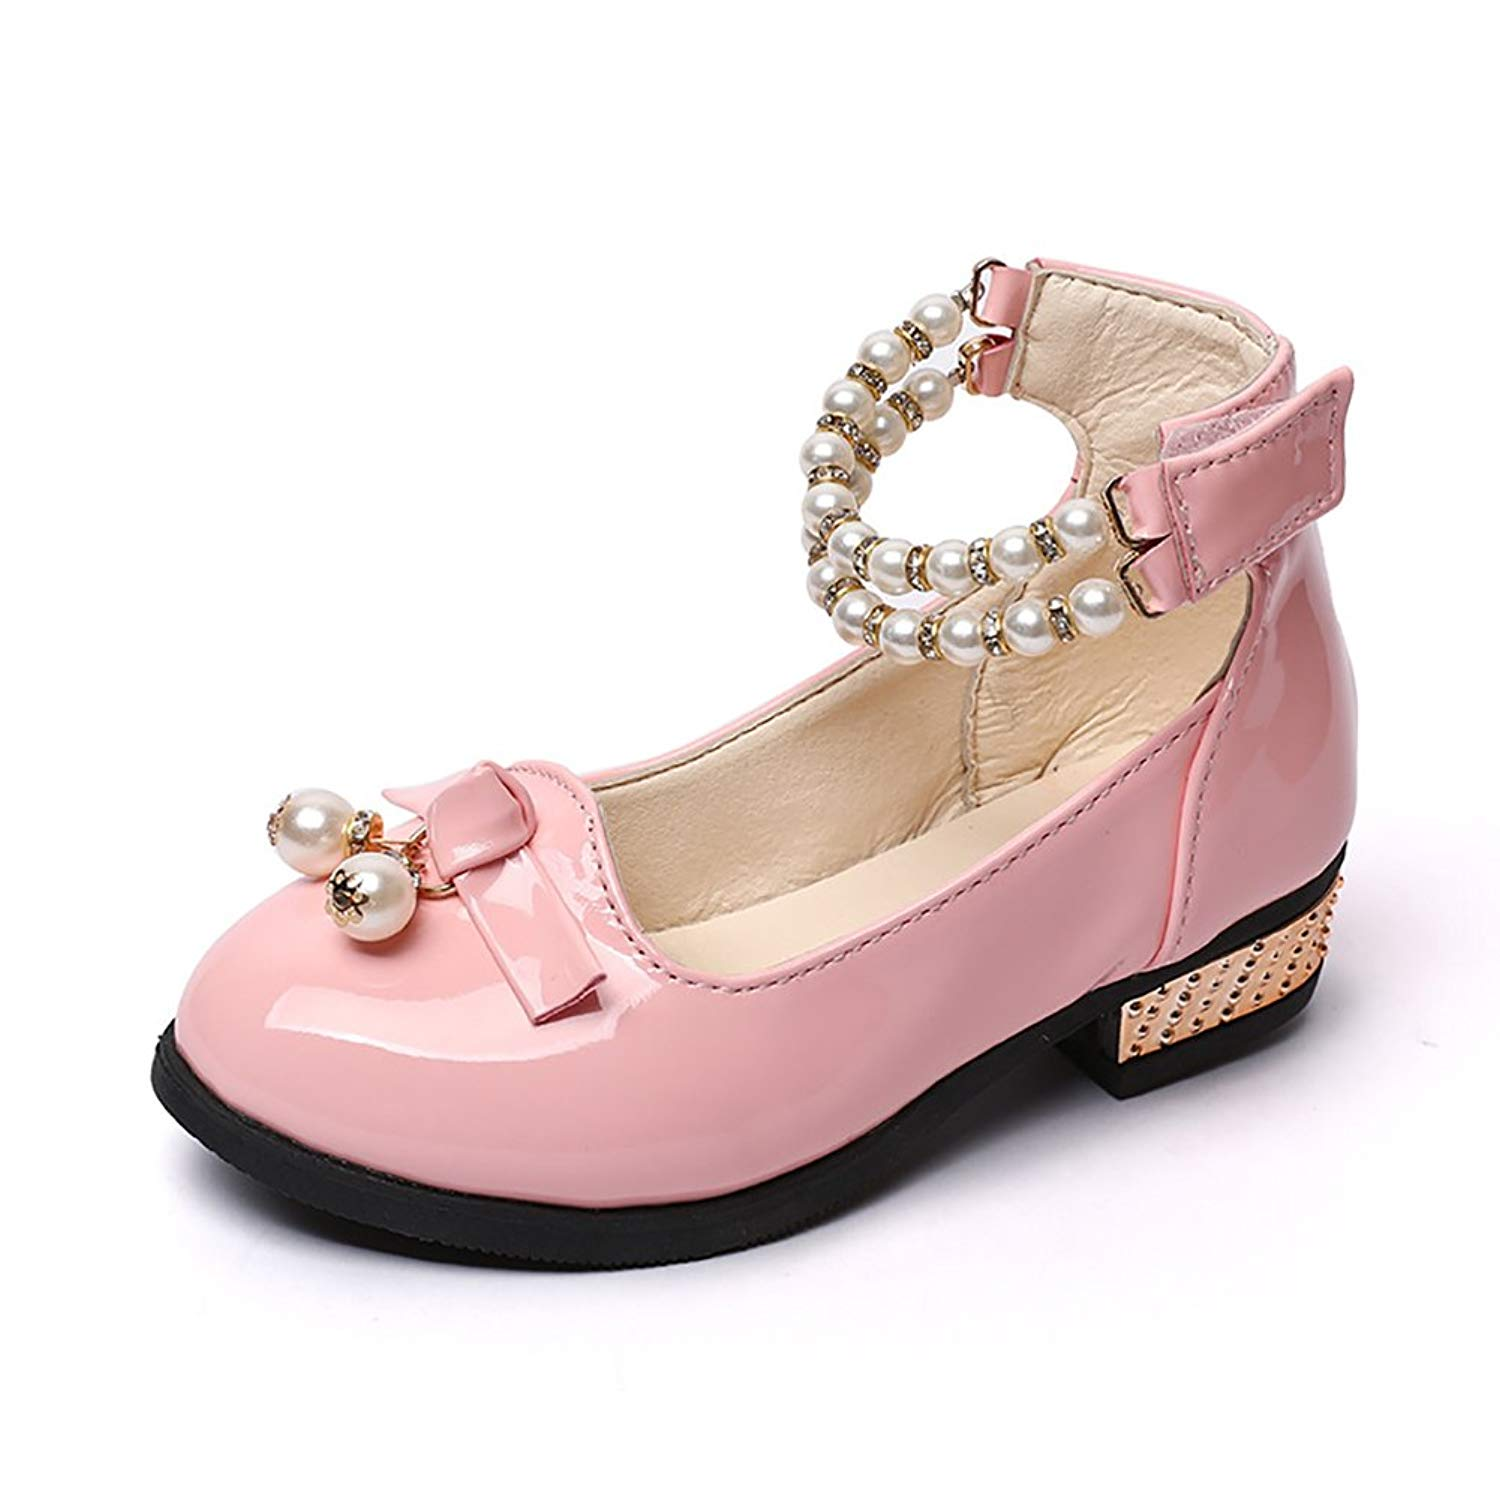 fb18e4c6eb4627 Get Quotations · BININBOX Girls Pearl Girls Dress Shoes Low Heels Leather Shoes  Kids Sandals